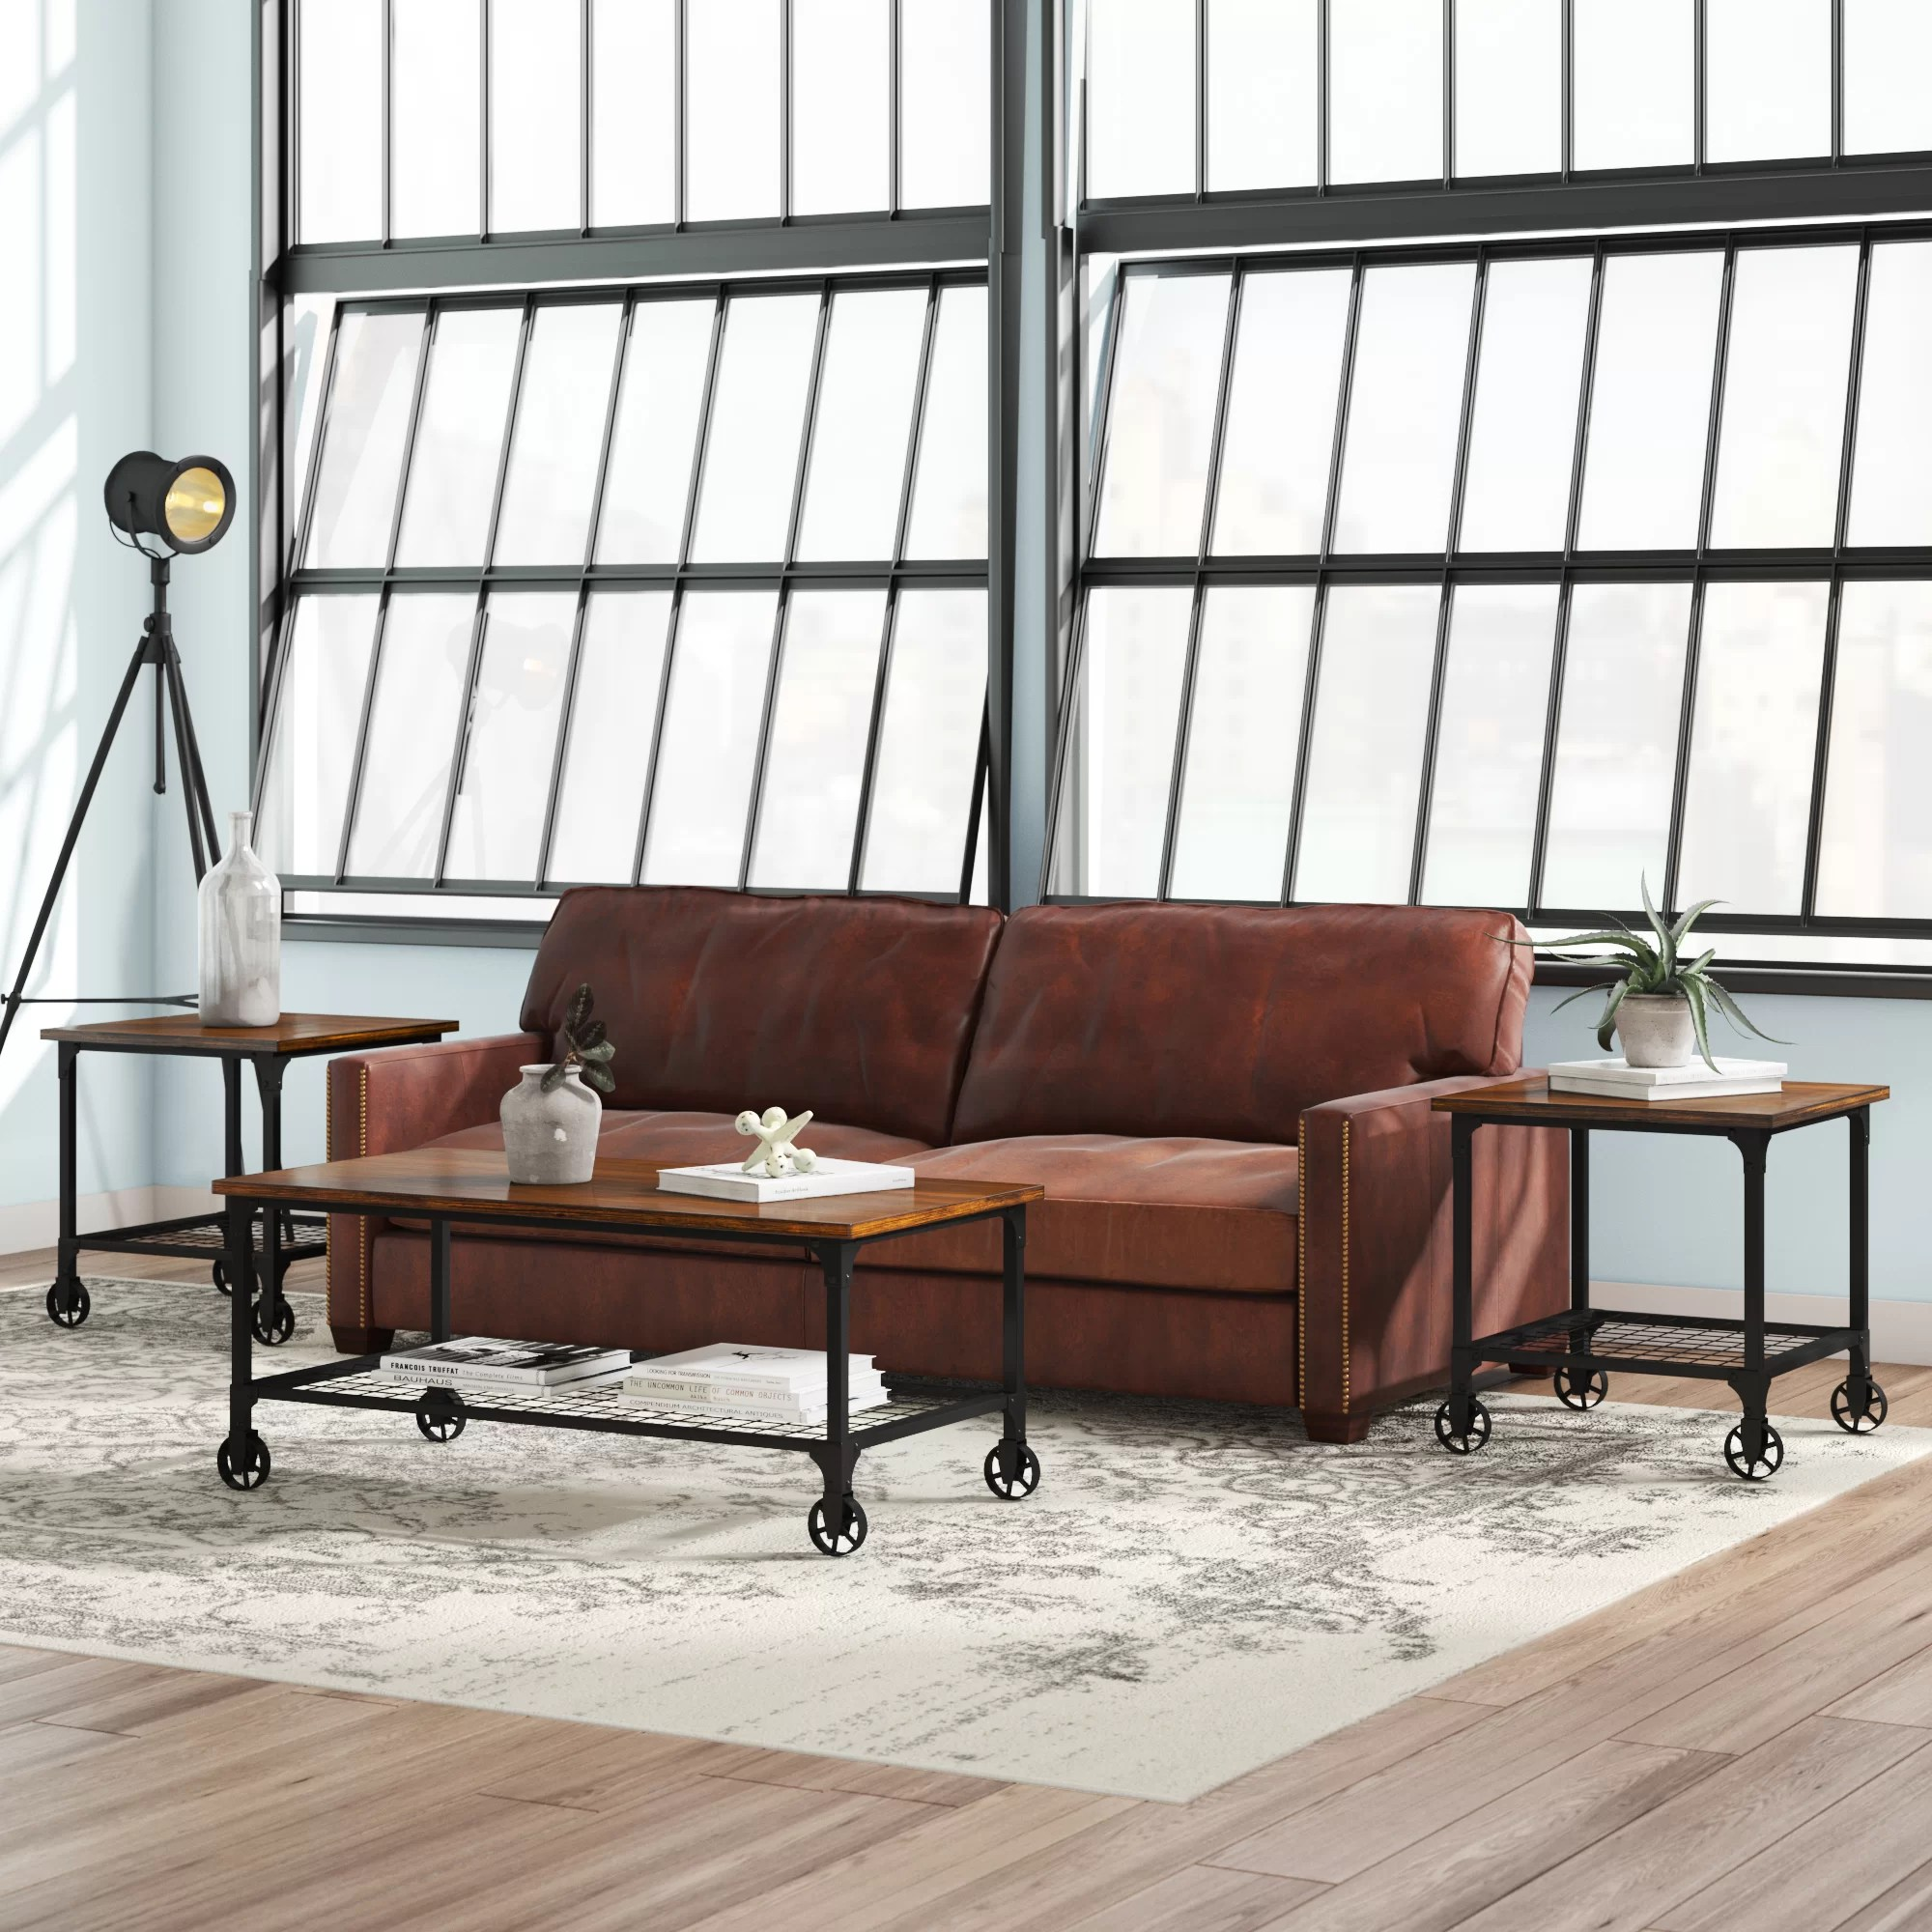 Urban Sofa Nederland Nederland 3 Piece Coffee Table Set